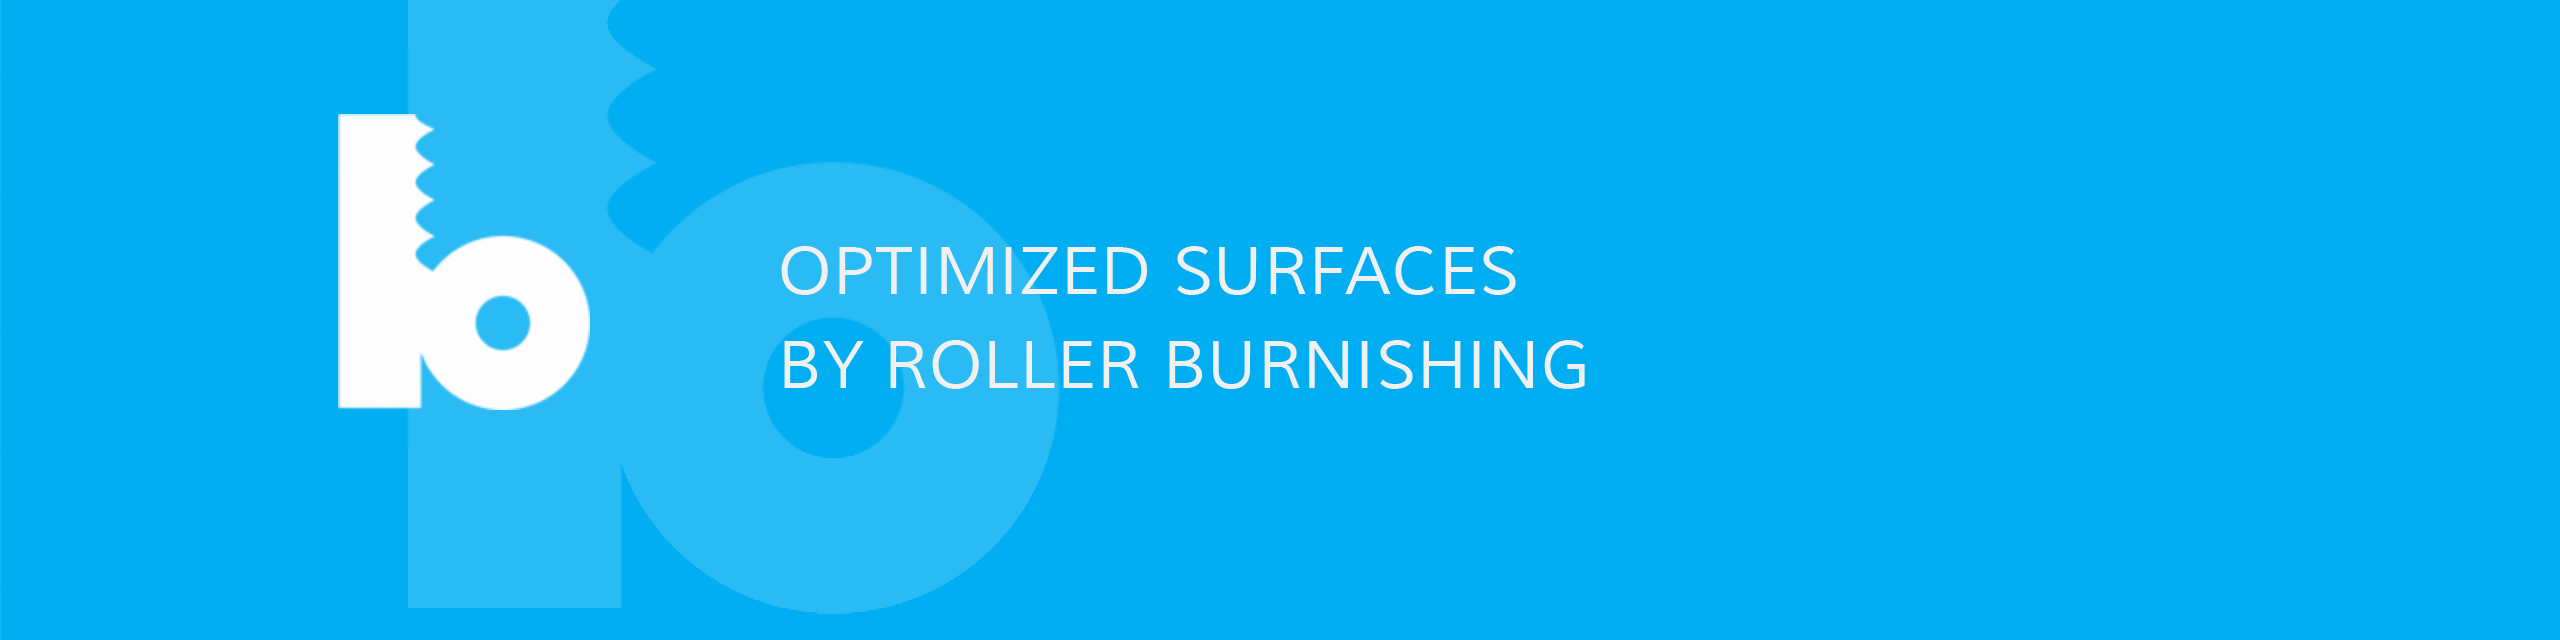 Optimized Surfaces by roller burnishing